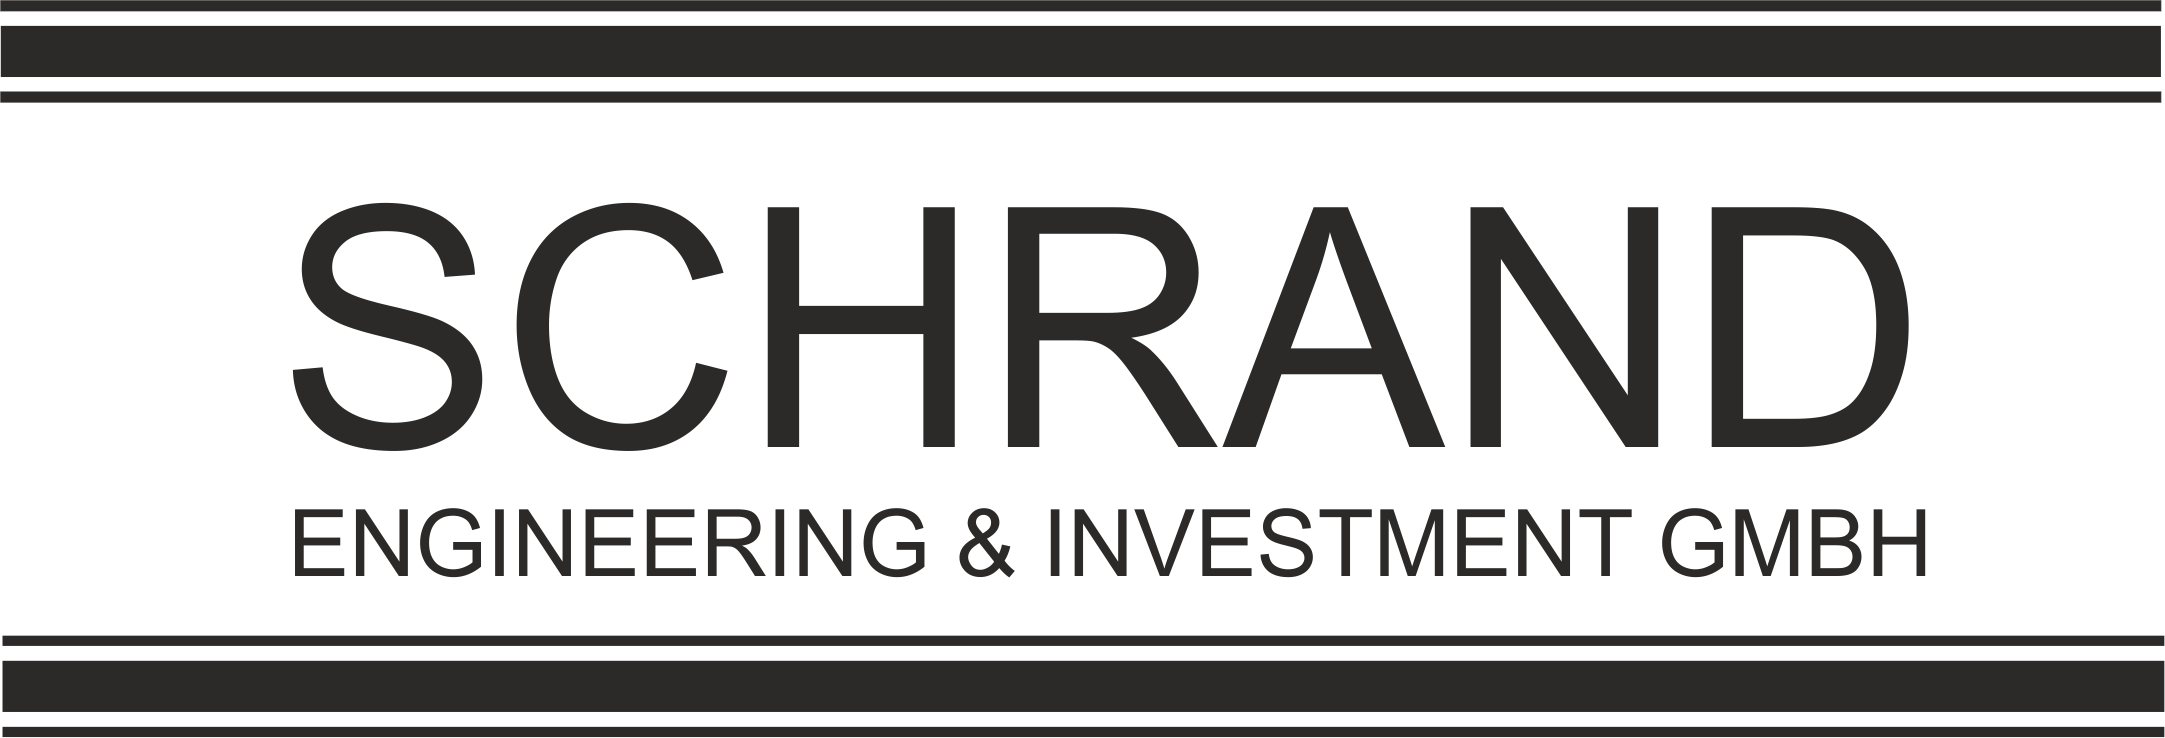 SCHRAND ENGINEERING & INVESTMENT GmbH